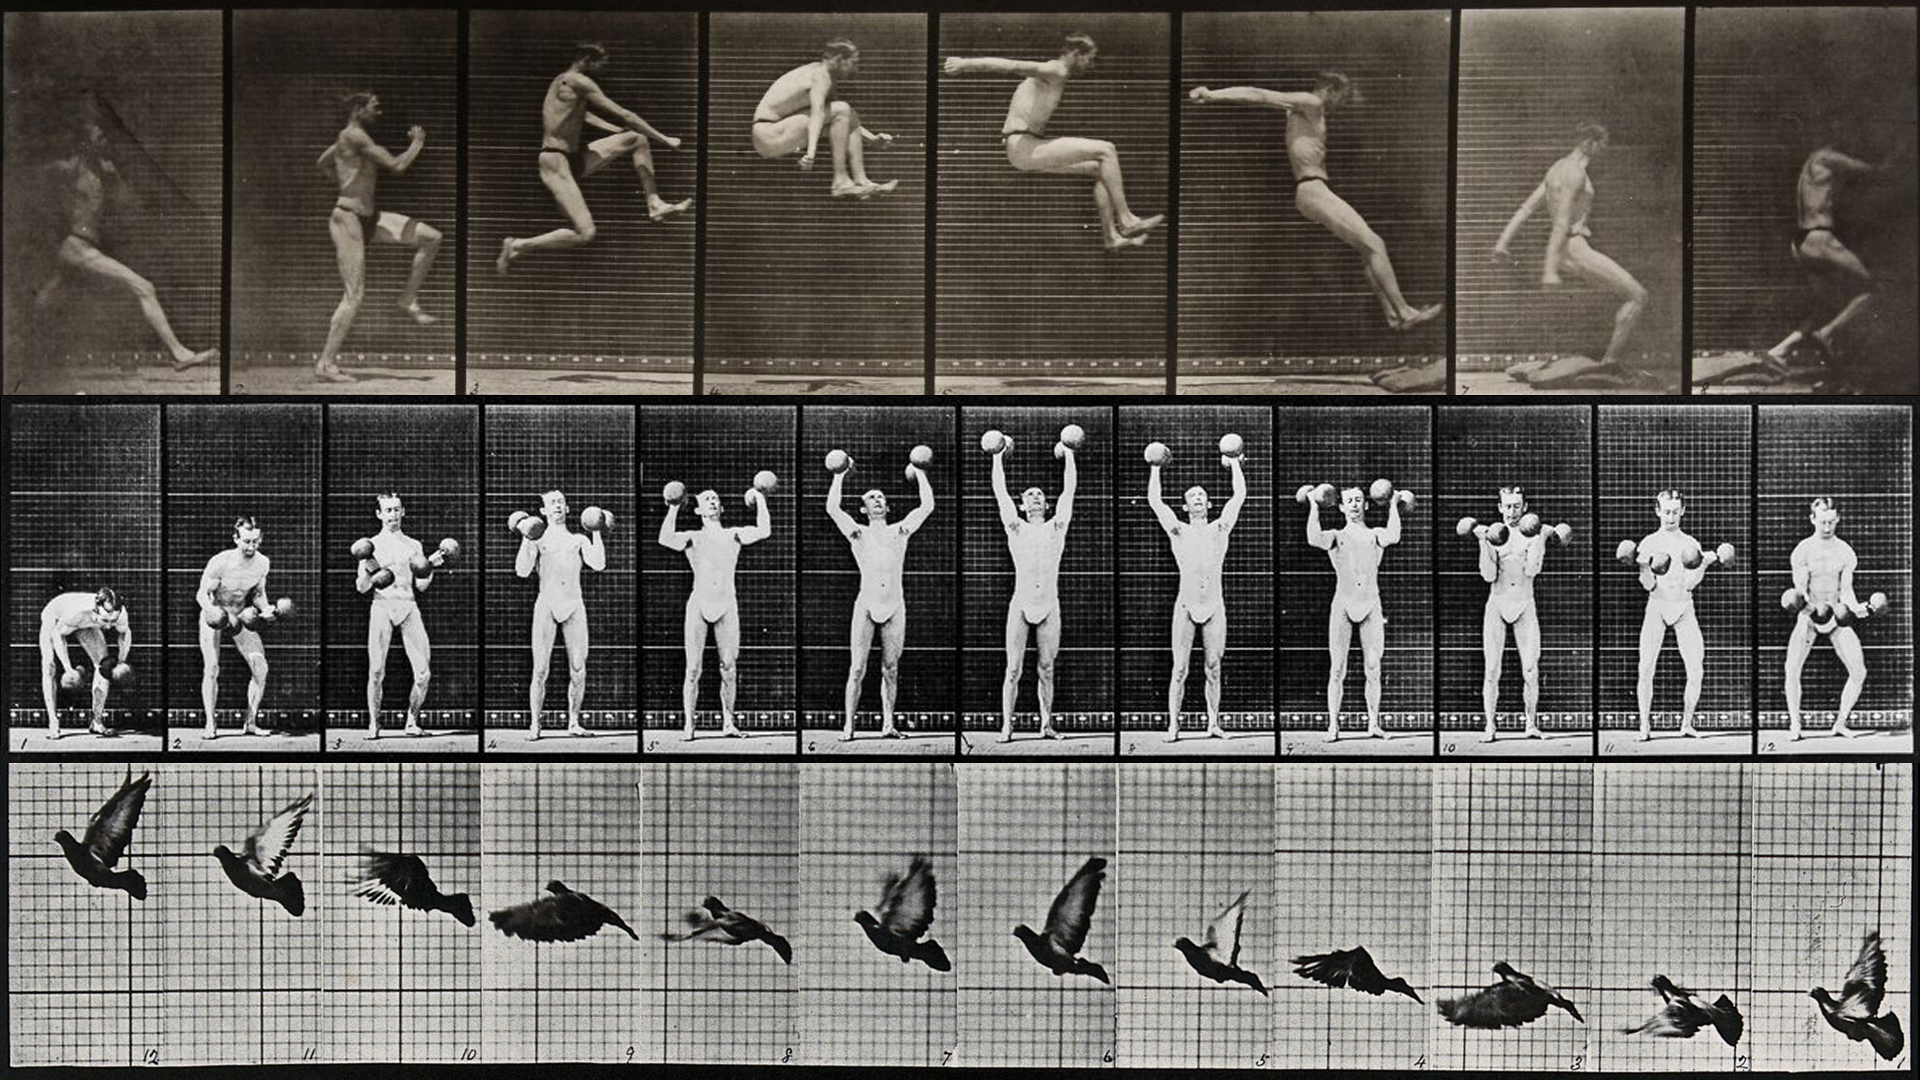 James Medcraft OCTAVE Eadweard Muybridge.jpg